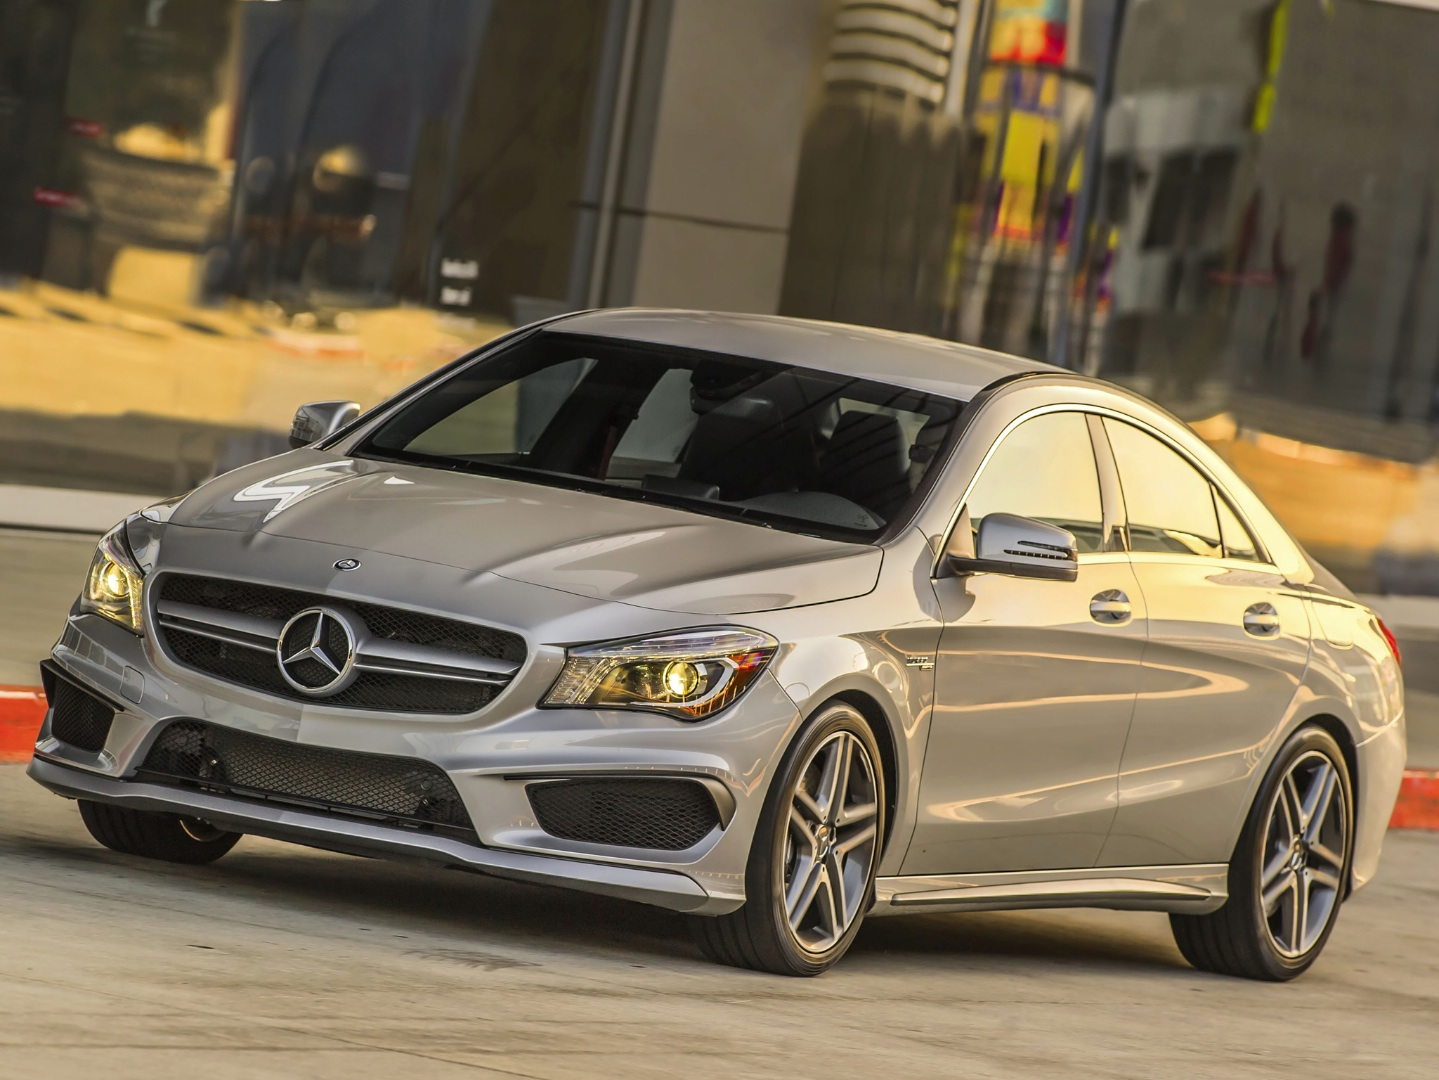 Mercedes benz usa breaks all time sales record in 2013 for Mercedes benz customer service usa